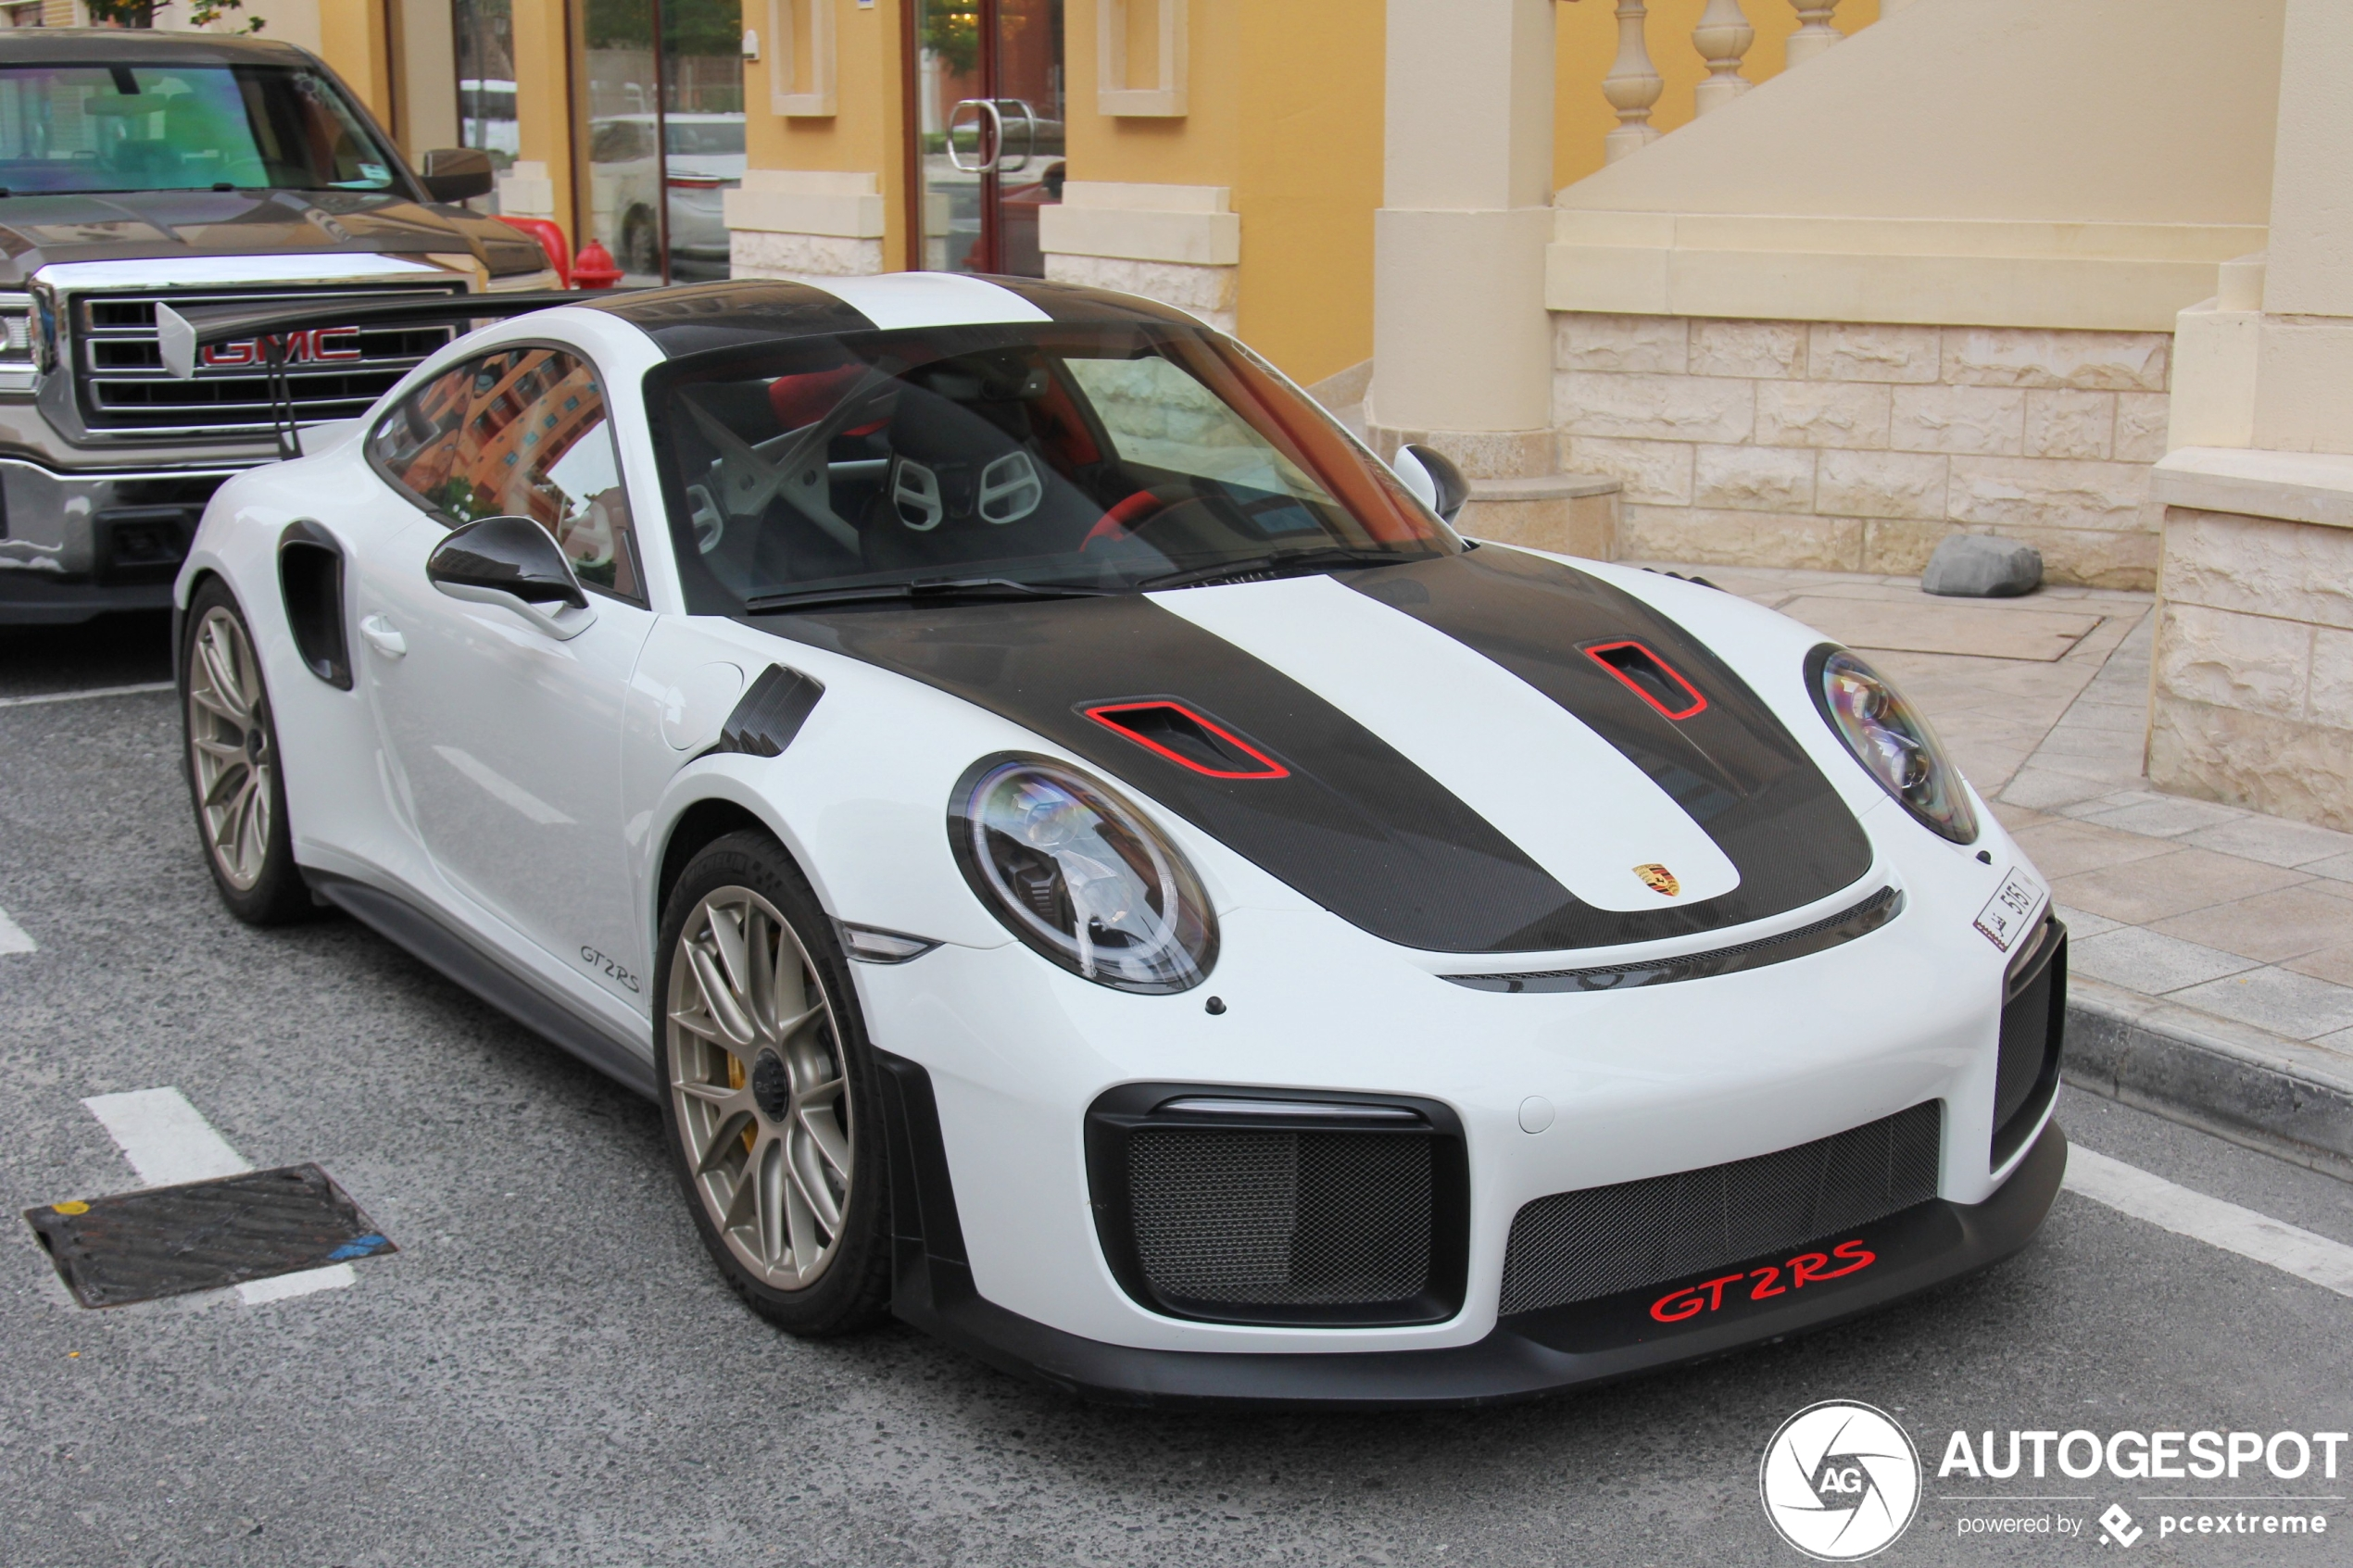 Rode details maken Porsche 991 GT2 RS perfect